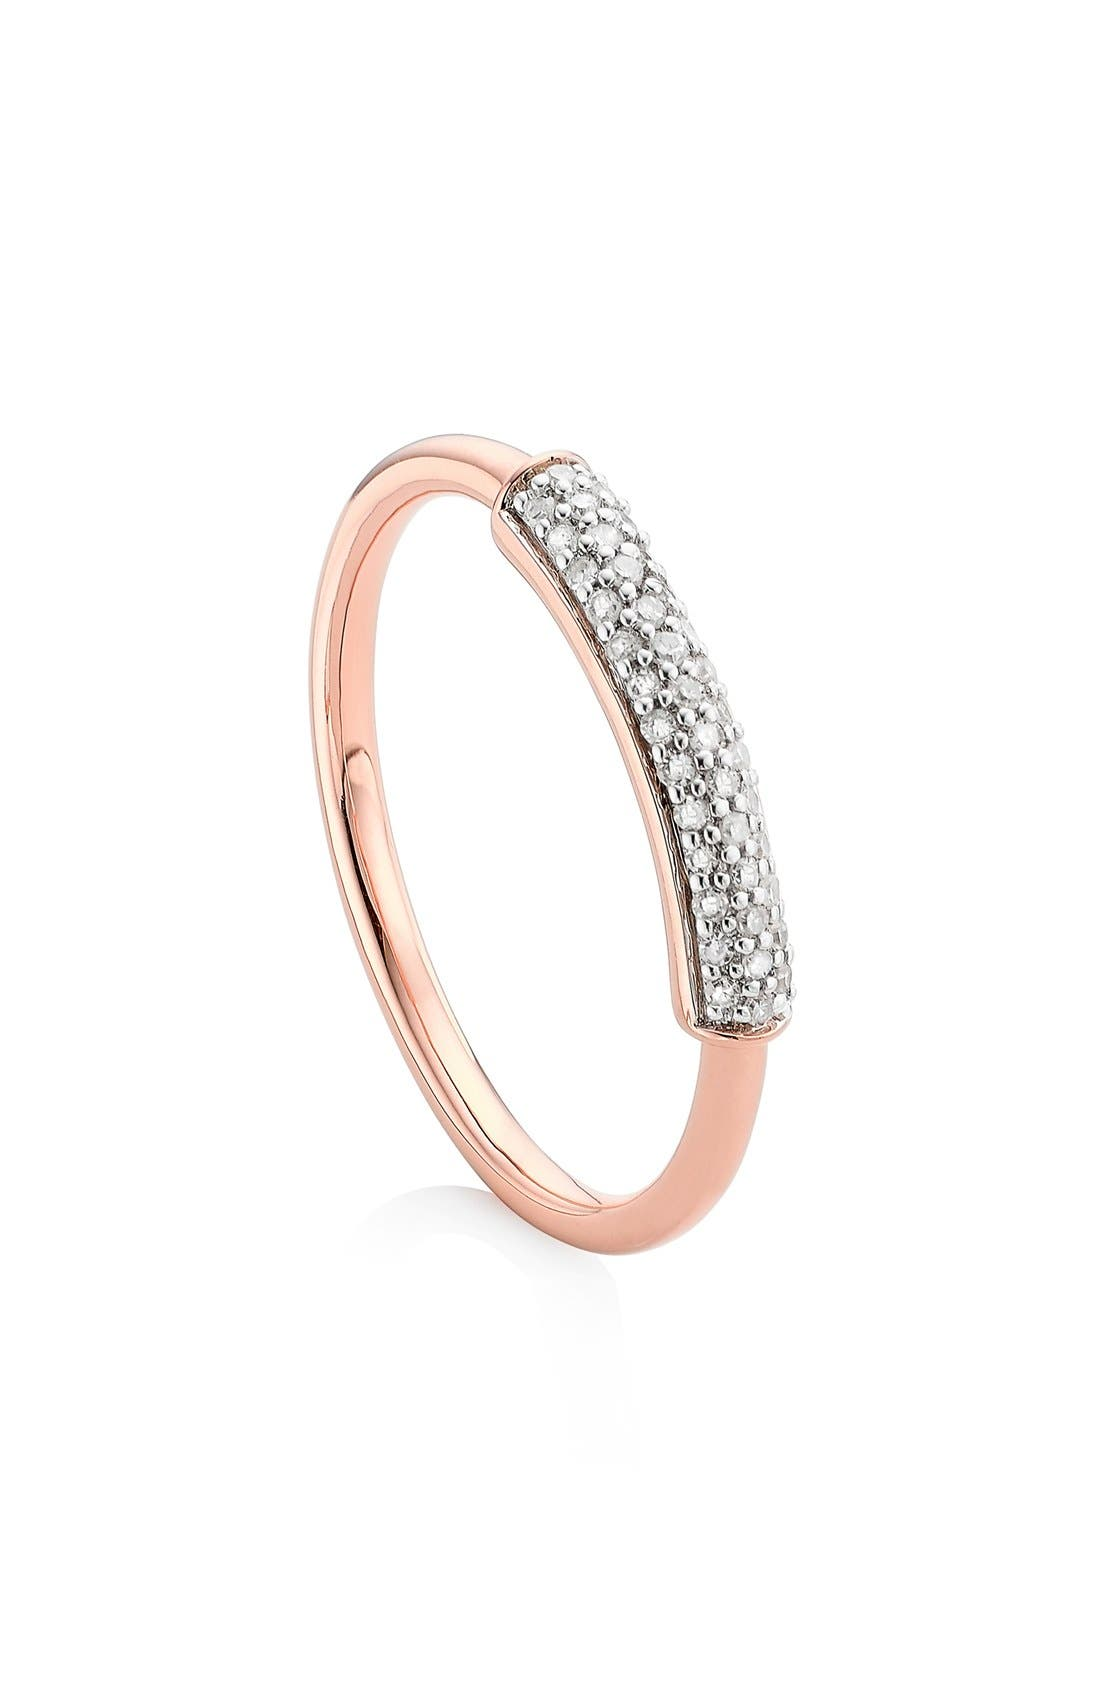 MONICA VINADER, 'Stellar' Diamond Band Ring, Main thumbnail 1, color, ROSE GOLD